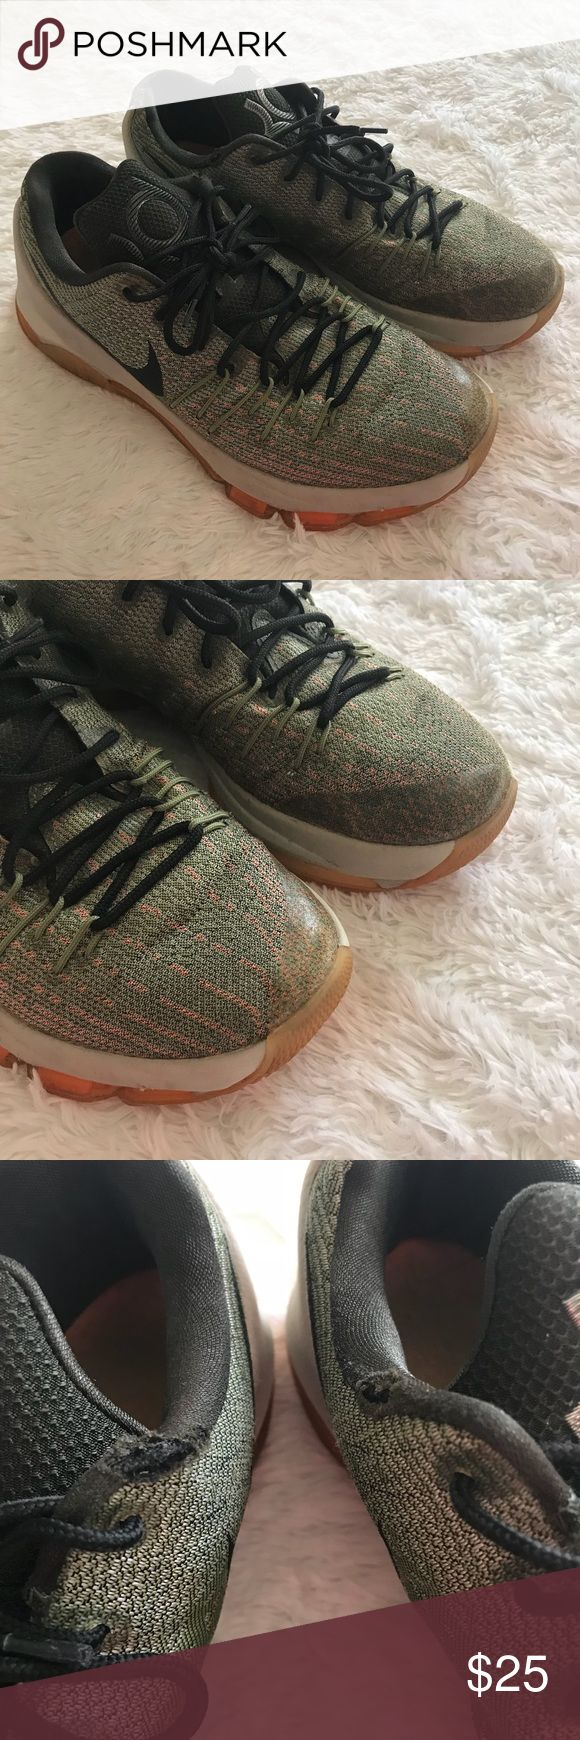 KD Nike Mens Sneakers Size 9 KD Nike Mens Sneakers  Size 9  Few flaws that i showed in pictures. Around opening there is a tear on each shoe but it is not noticeable when sneaker is on. Over all the sneakers are in great shape.  Colors Green Black Gray Orange Nike Shoes Sneakers